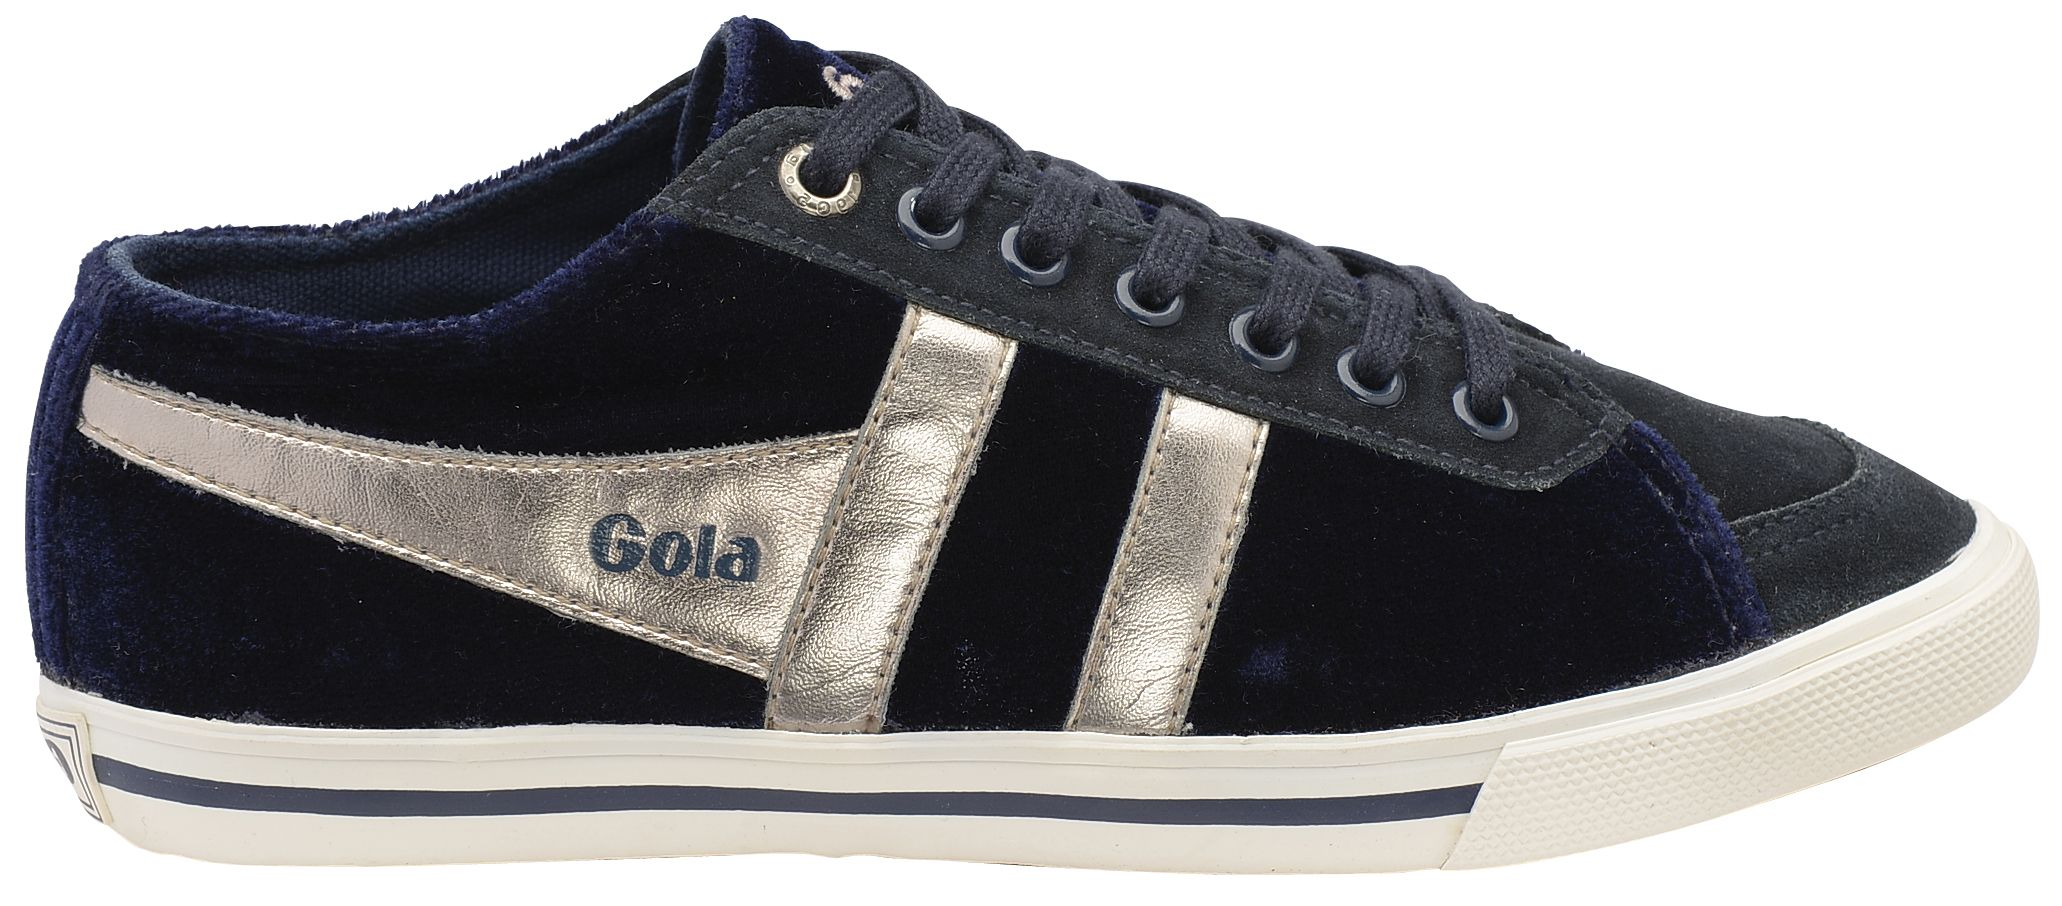 Gola quota velour trainer shoes